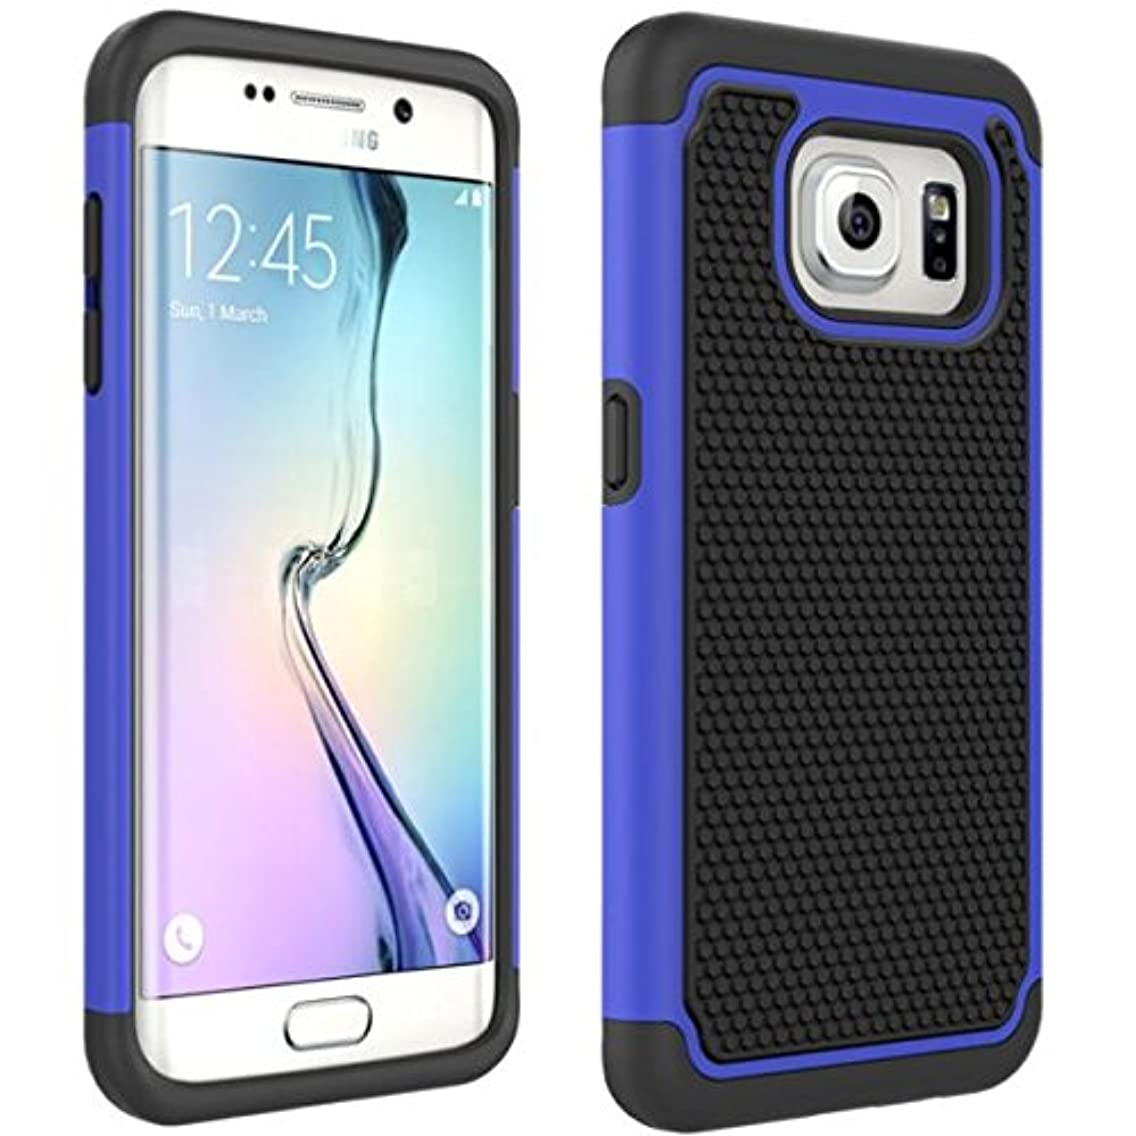 AT&T Samsung Galaxy S7 Edge (SM-G935A) Case, Shockproof Hybrid Case Dual Layer Defender Cover Reinced Drop Protection for Samsung Galaxy S7 Edge (SM-G935A)